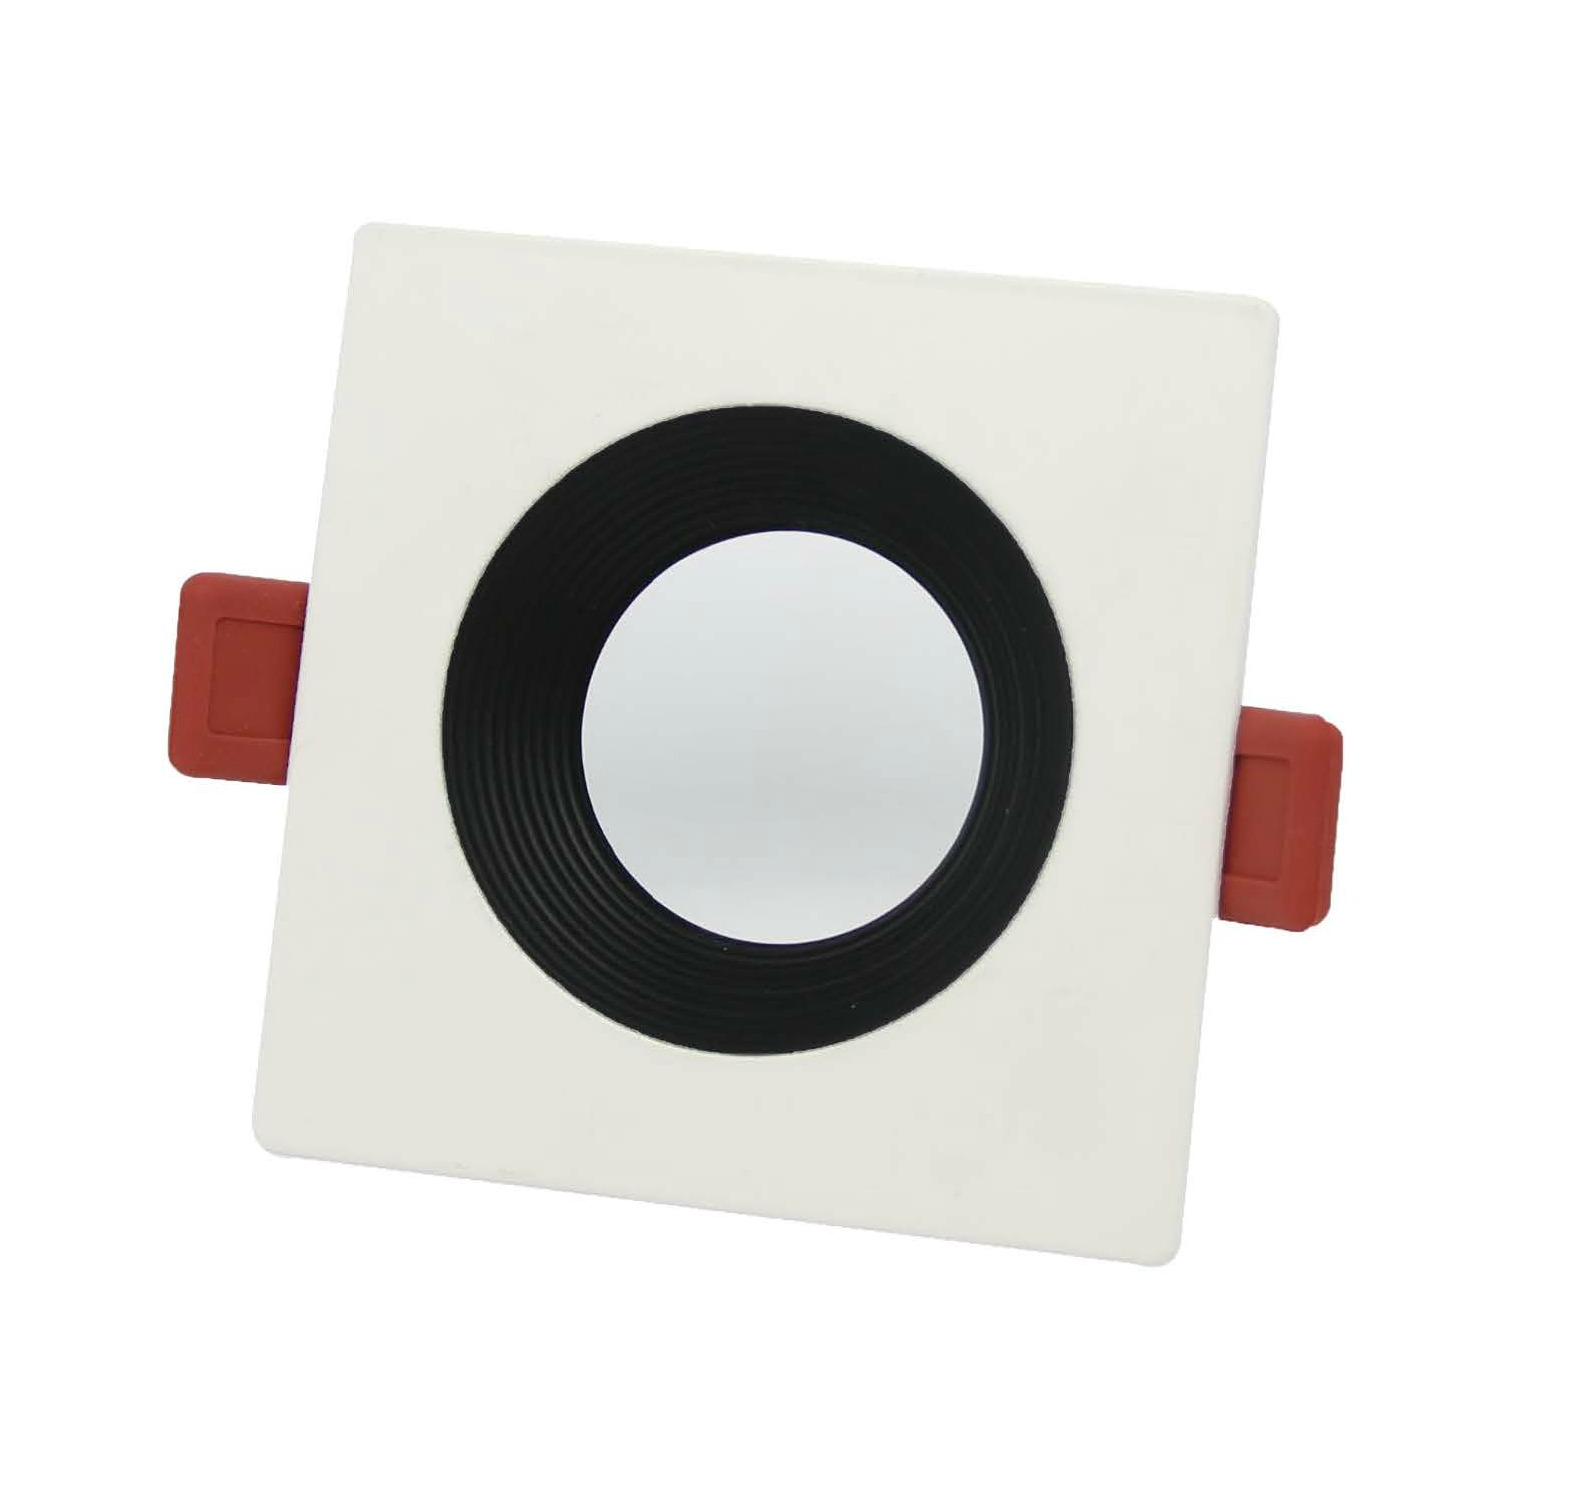 Square Weatherproof Downlight Frame